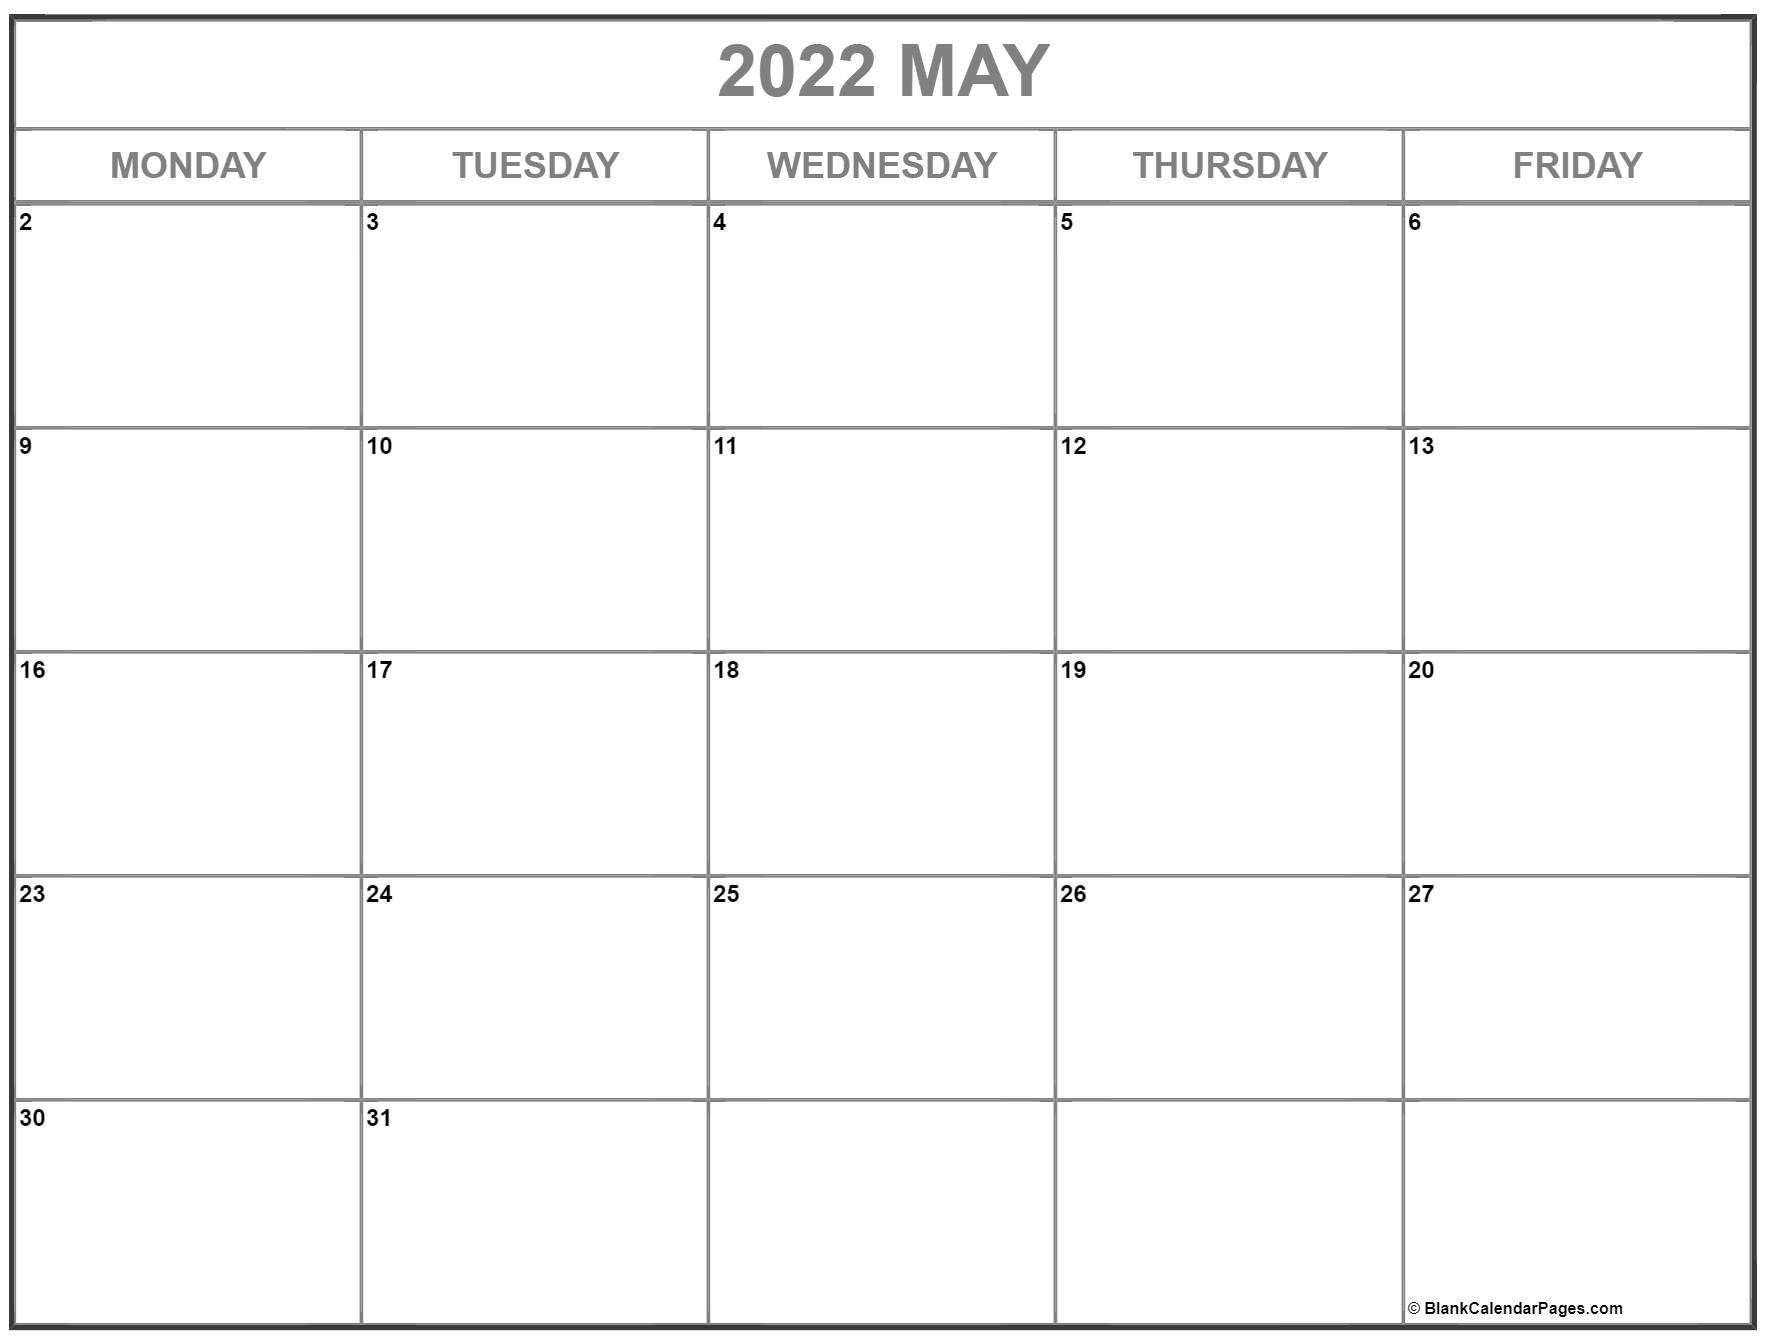 May 2022 Monday Calendar | Monday To Sunday Free Printable Monday Through Friday Calendar